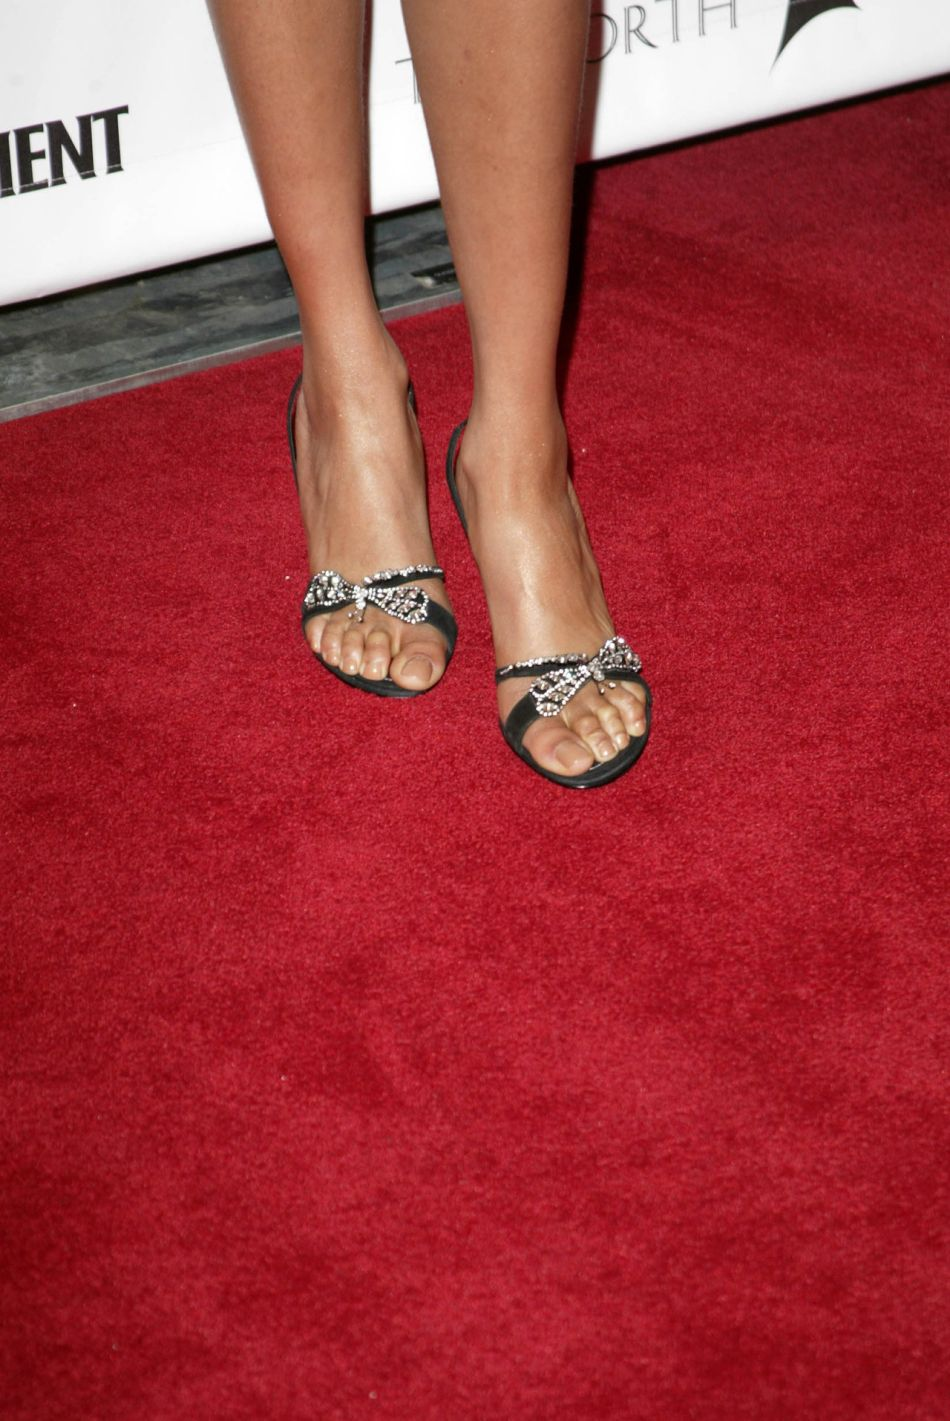 What Size Shoe Is Tyra Banks